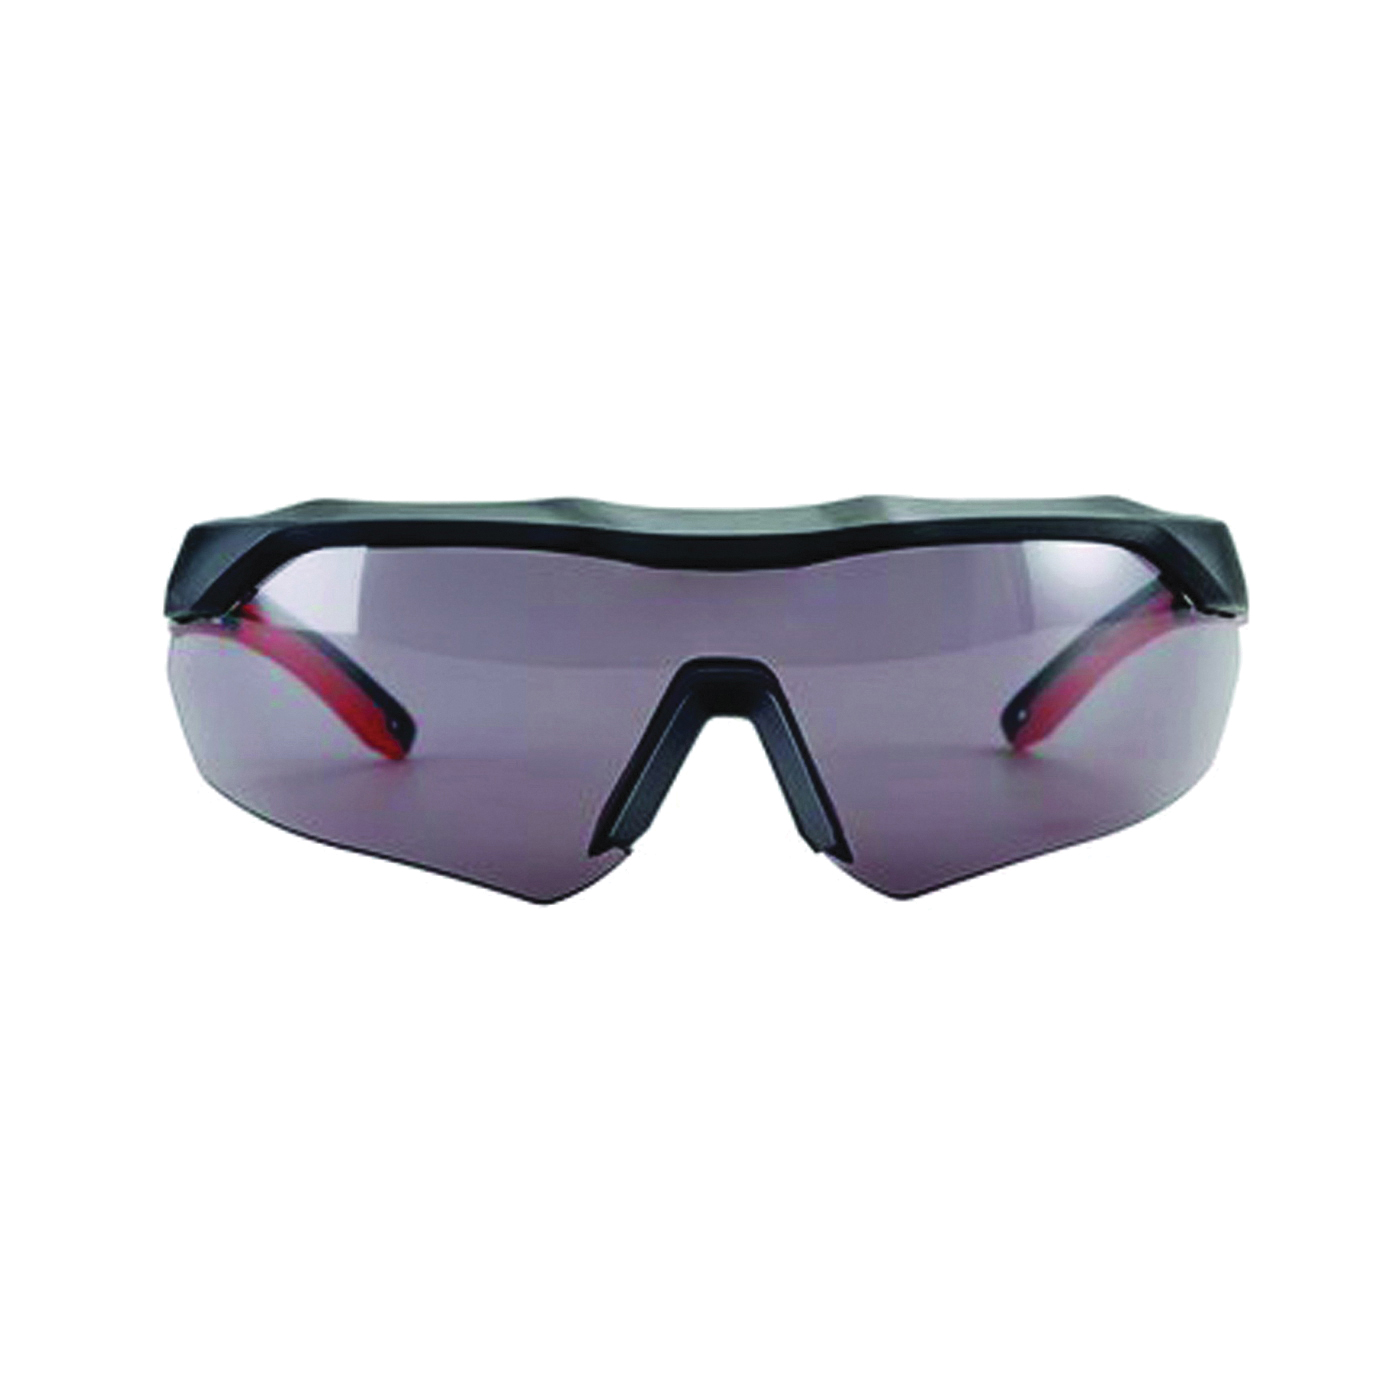 Picture of 3M 47091-WZ4 Safety Glasses, Anti-Fog, Anti-Scratch Lens, Wraparound Frame, Black/Red Frame